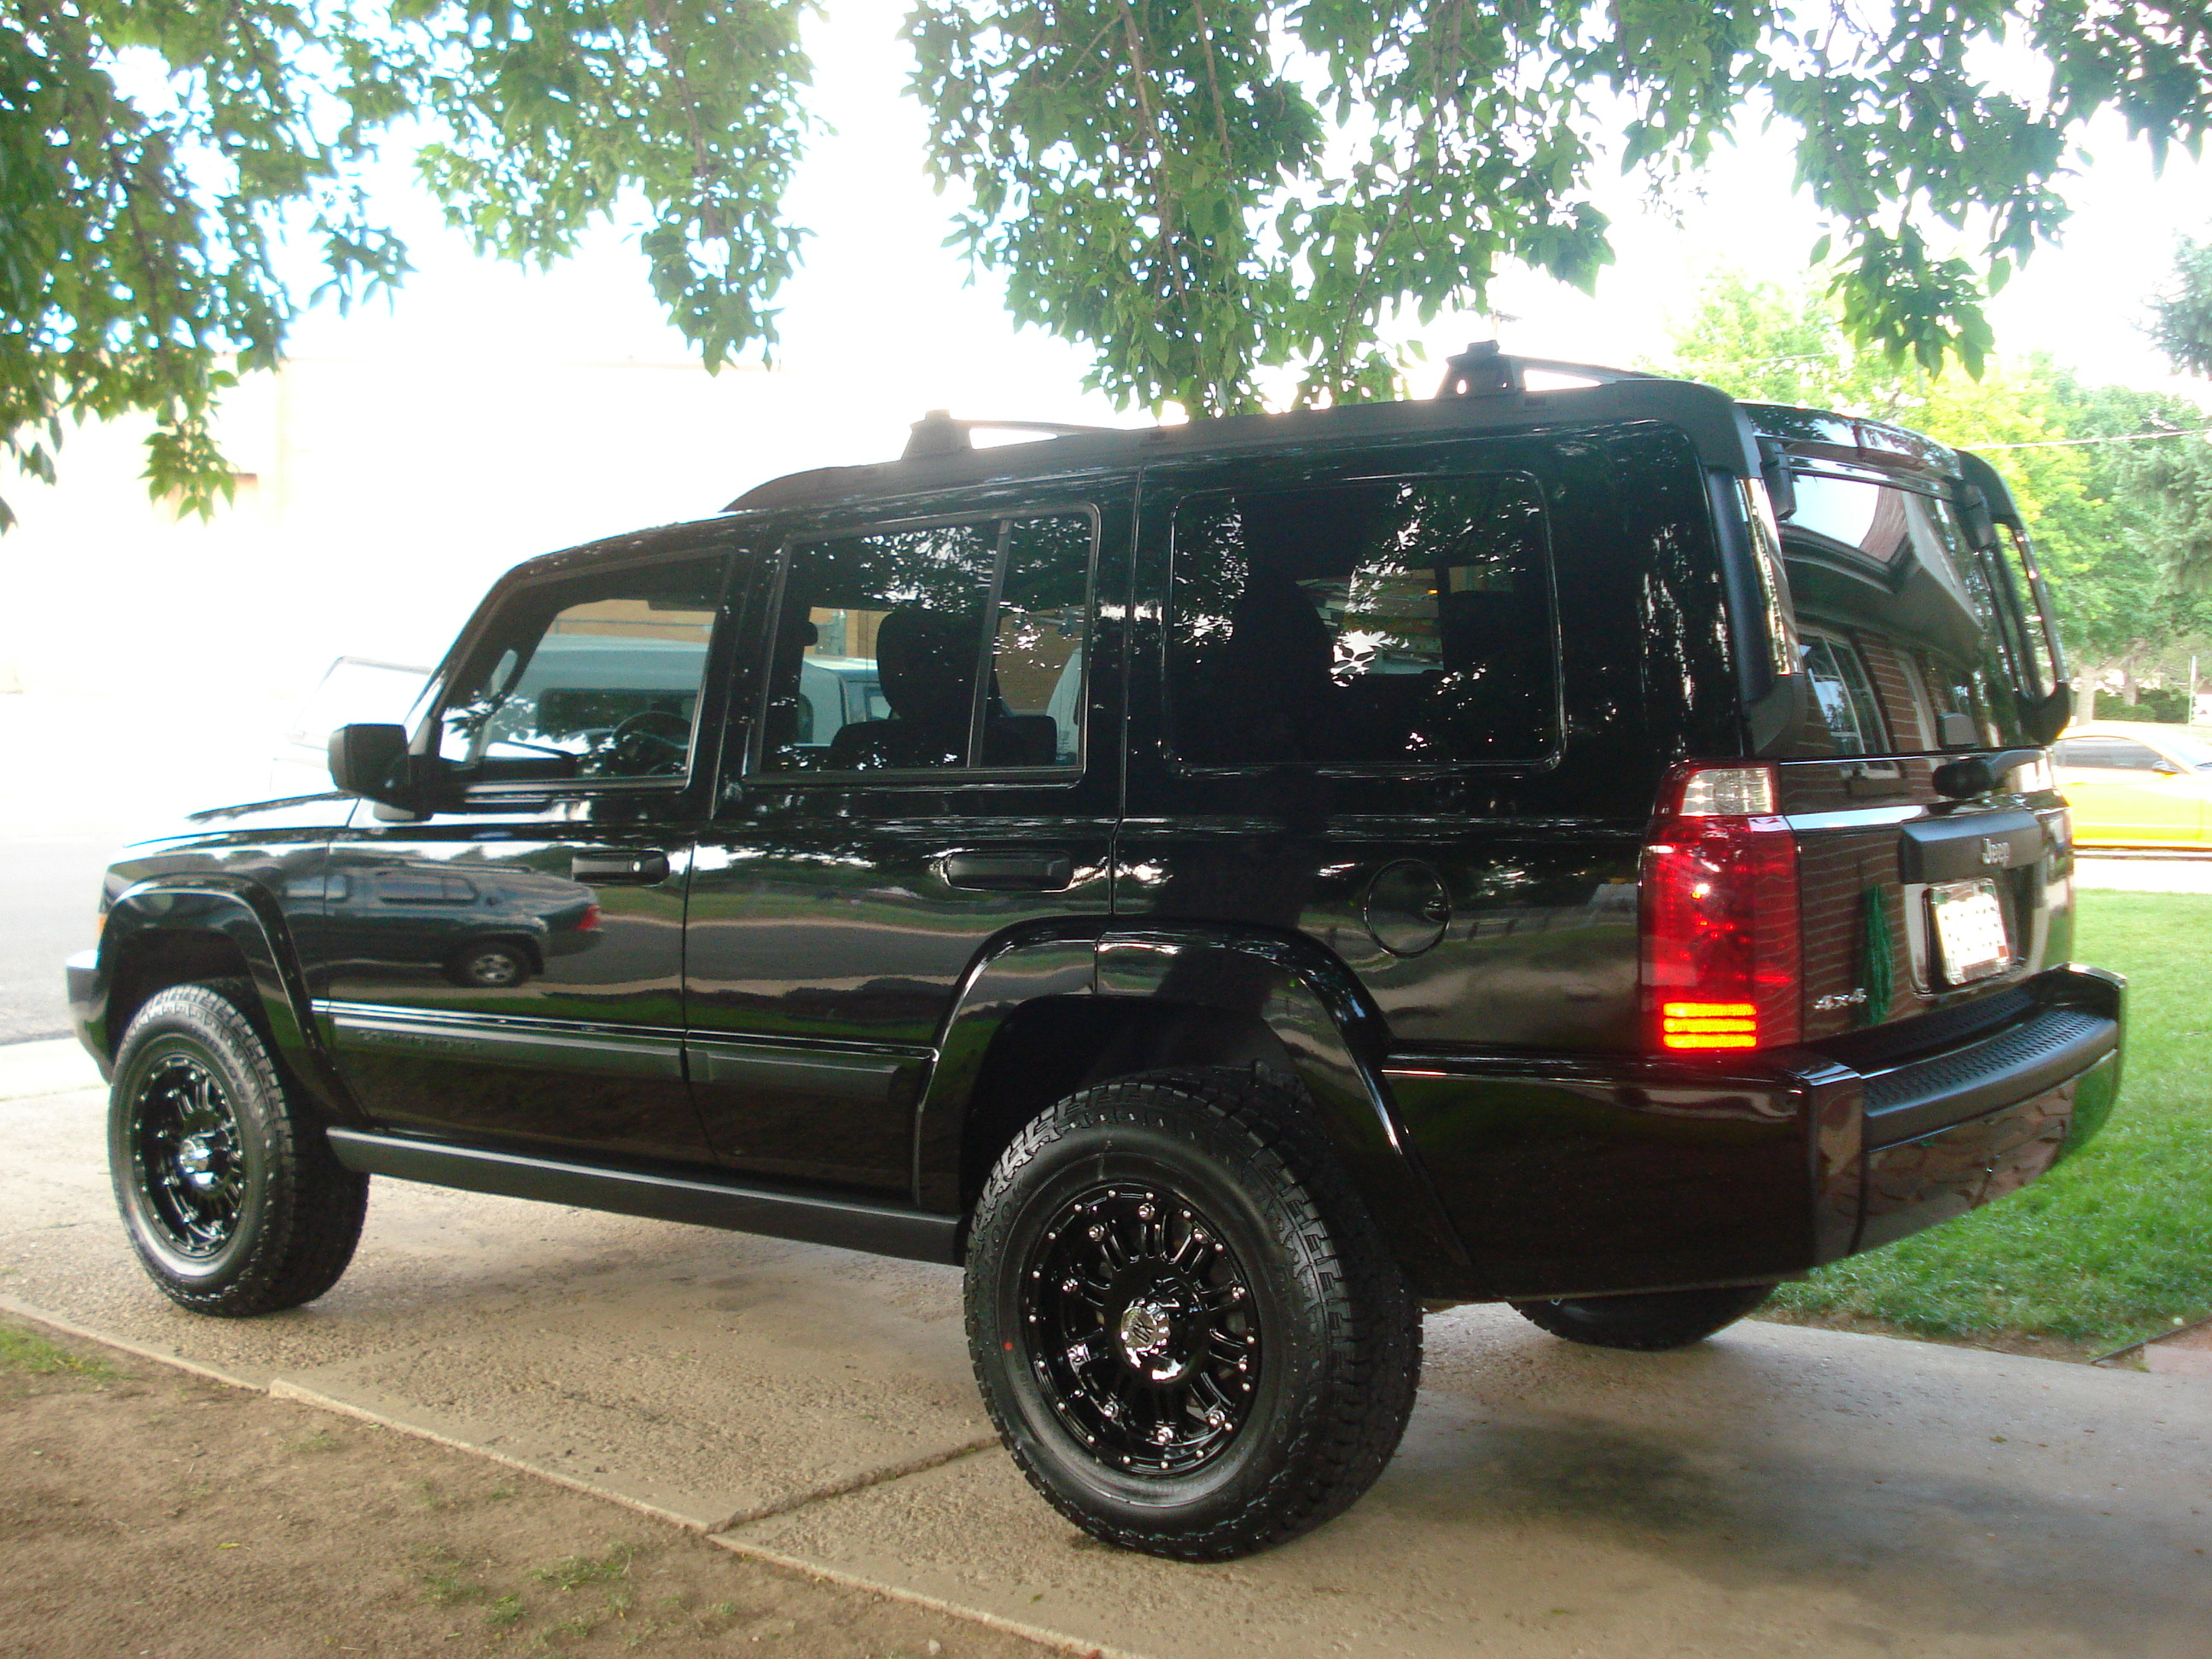 ei501 2006 jeep commander's photo gallery at cardomain